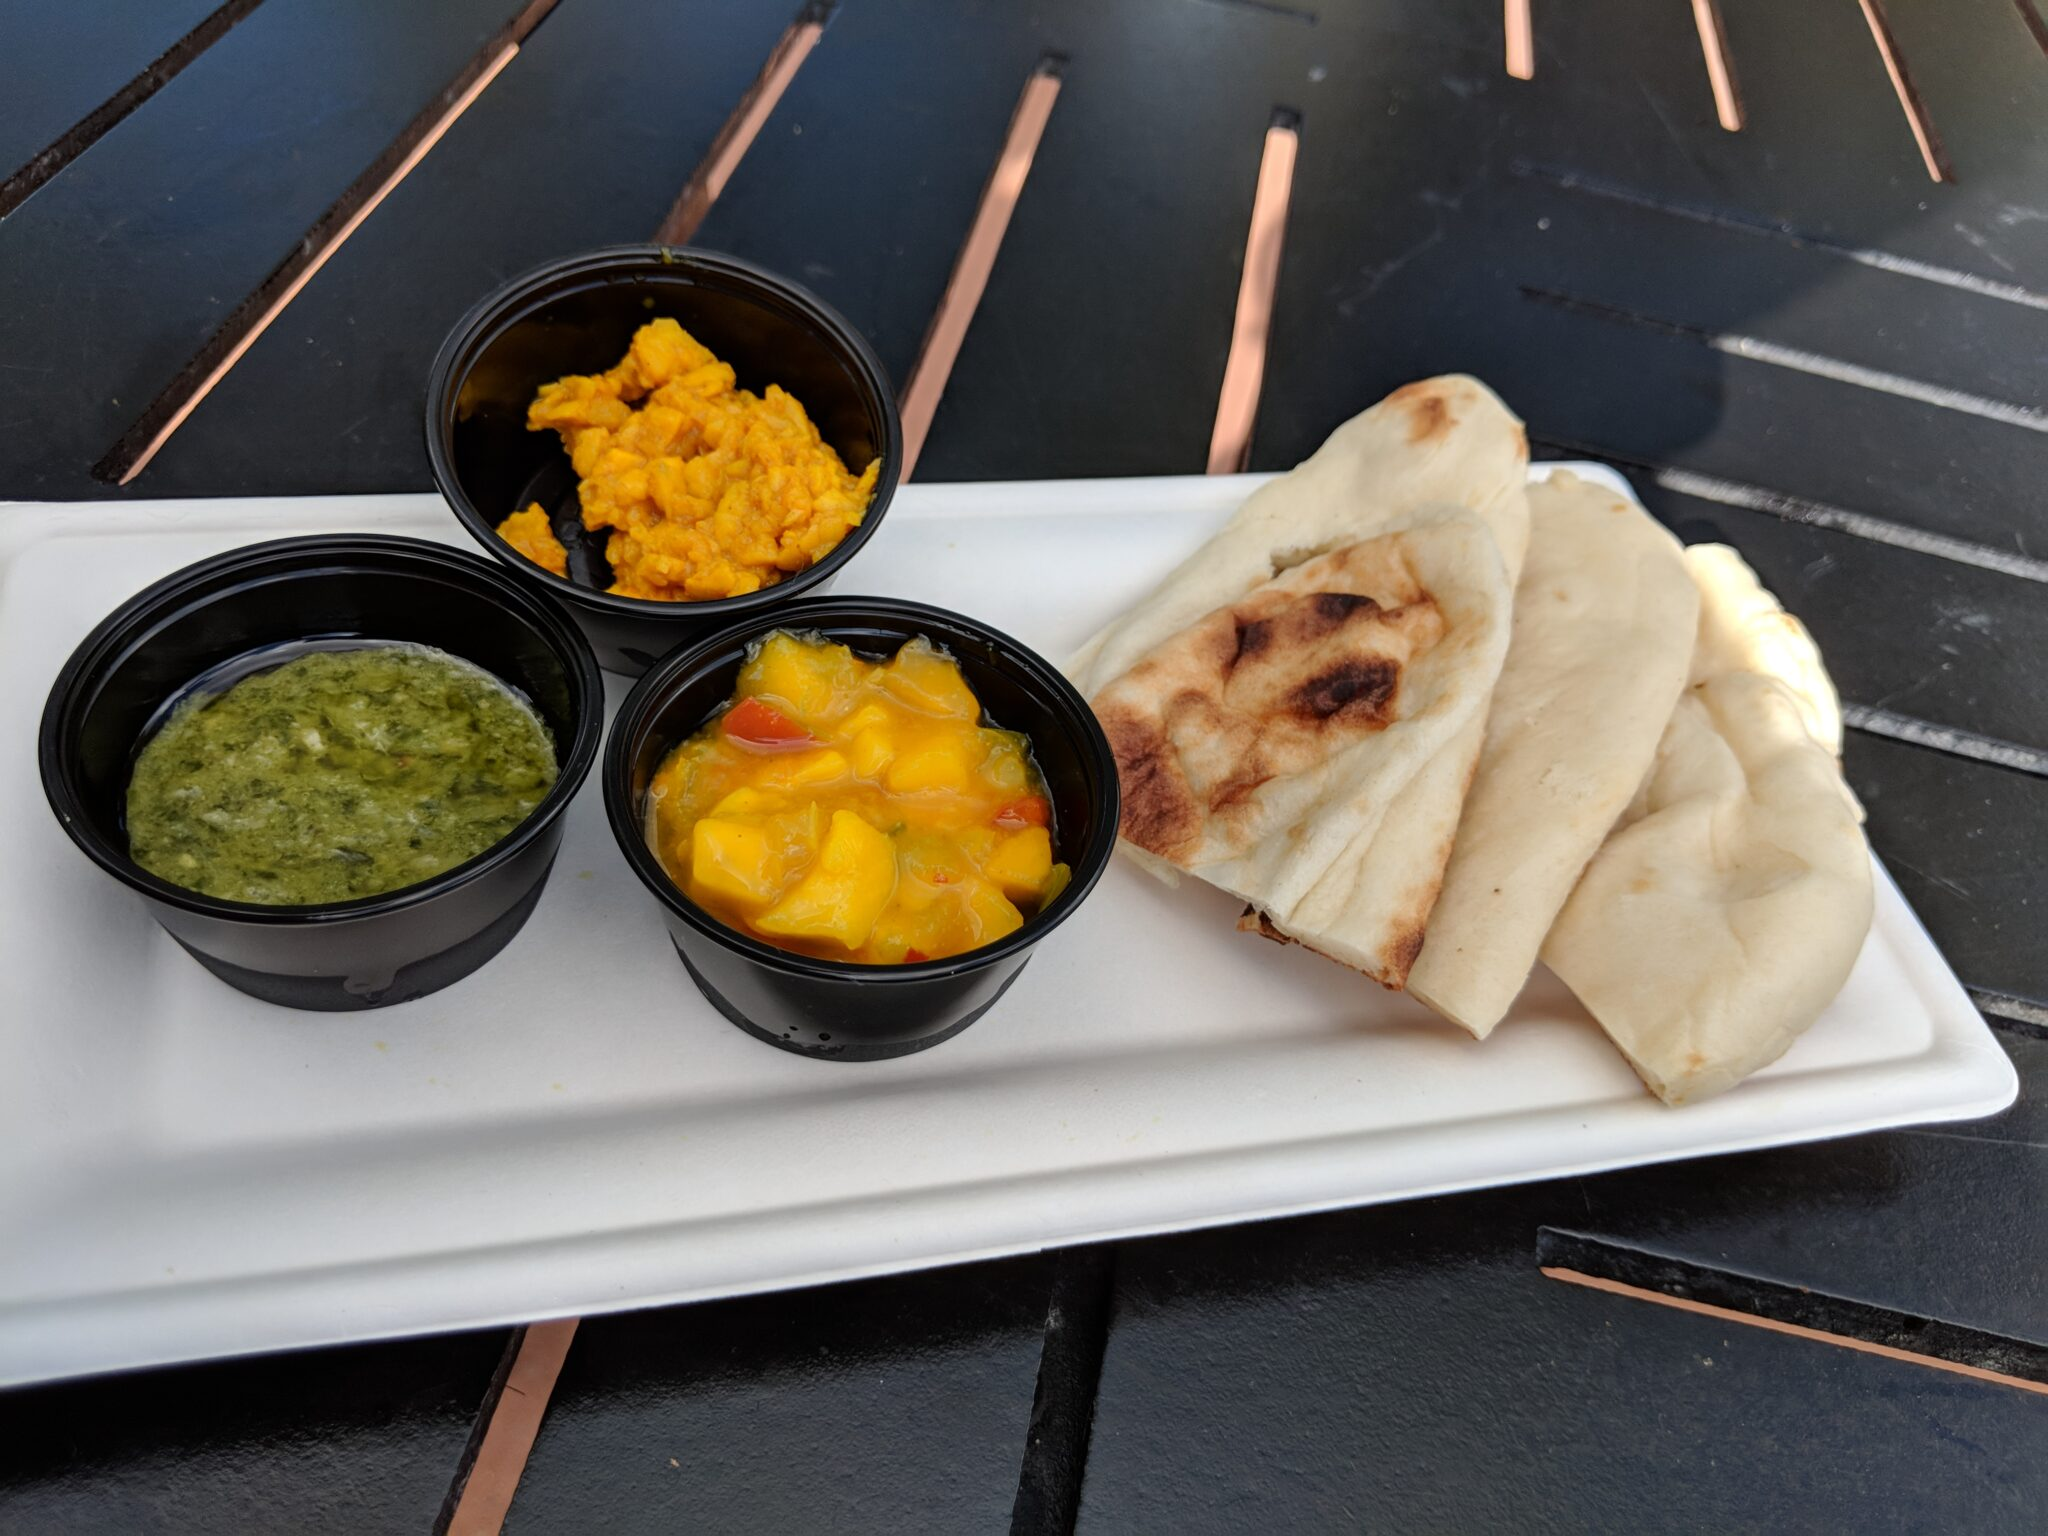 Get a sample of Sanaa bread service at Epcot Food & Wine.